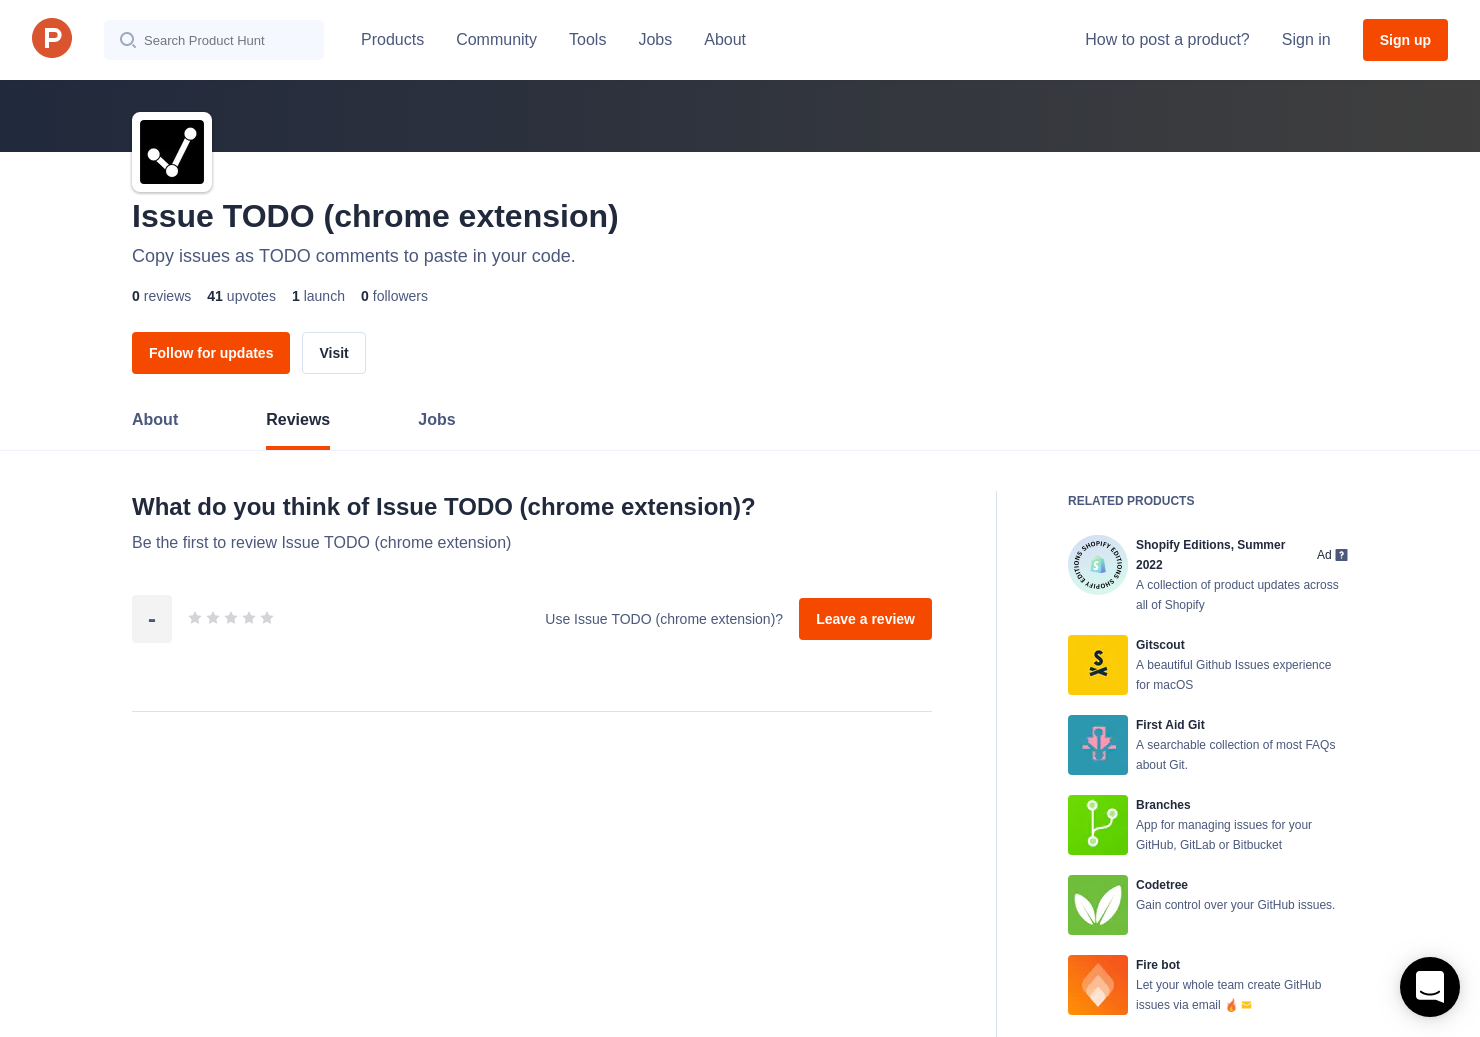 Issue TODO (chrome extension) Reviews - Pros, Cons and